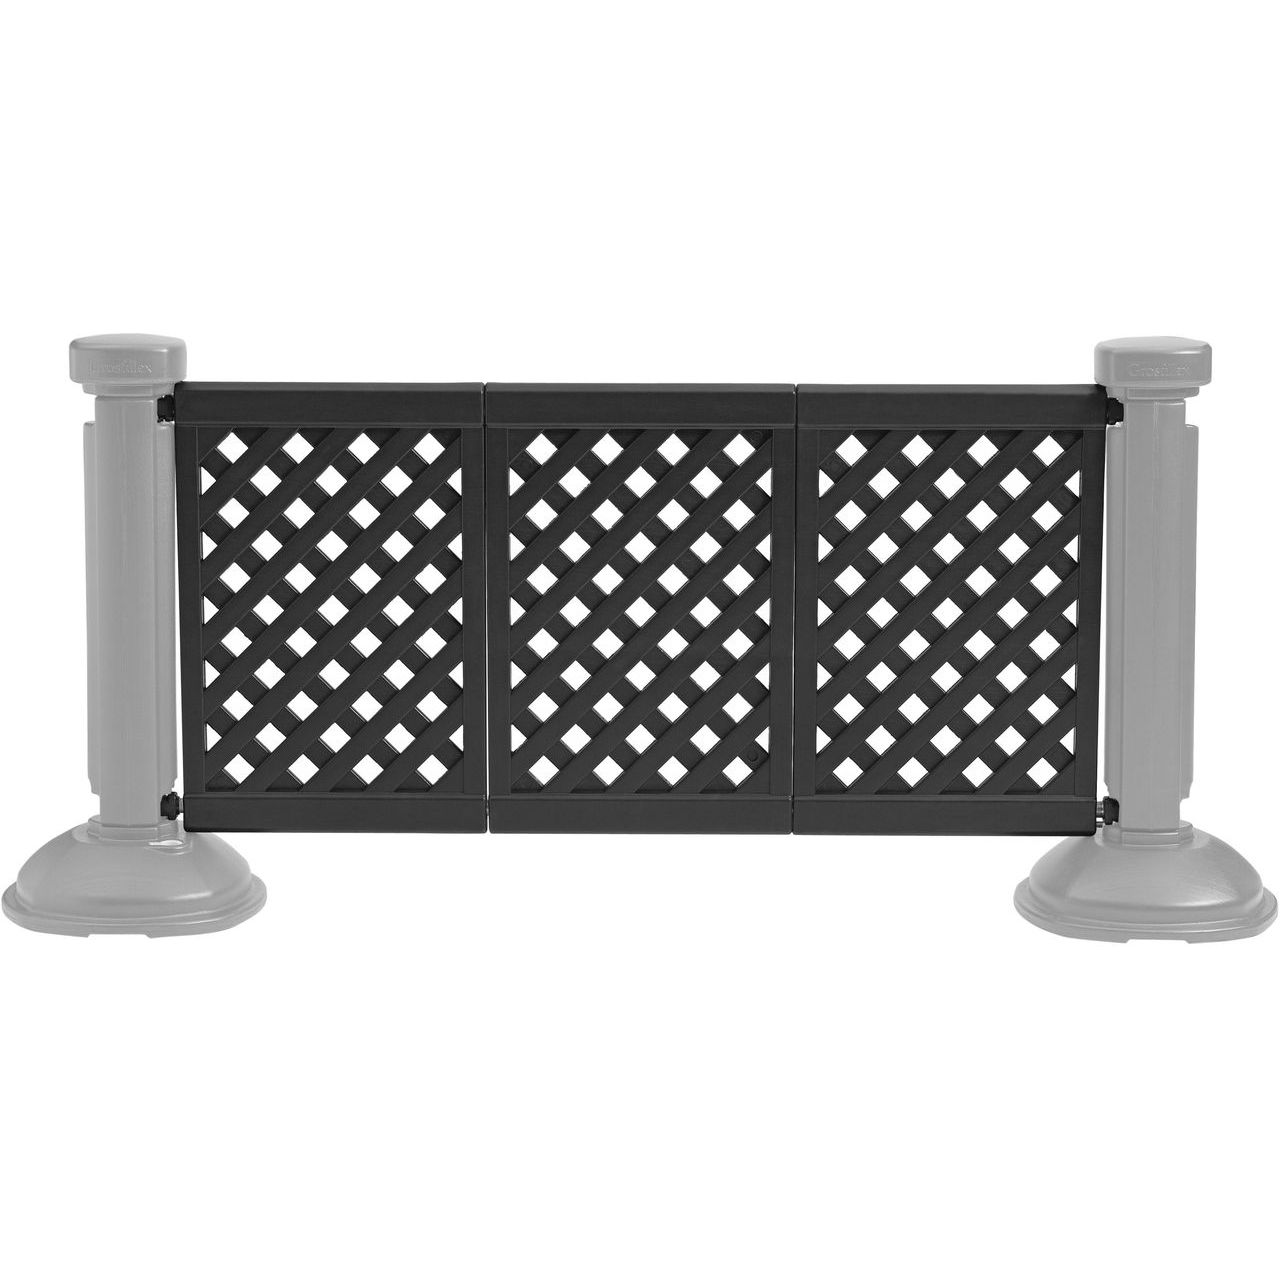 Grosfillex 3-Panel Section of Portable Fencing in Black